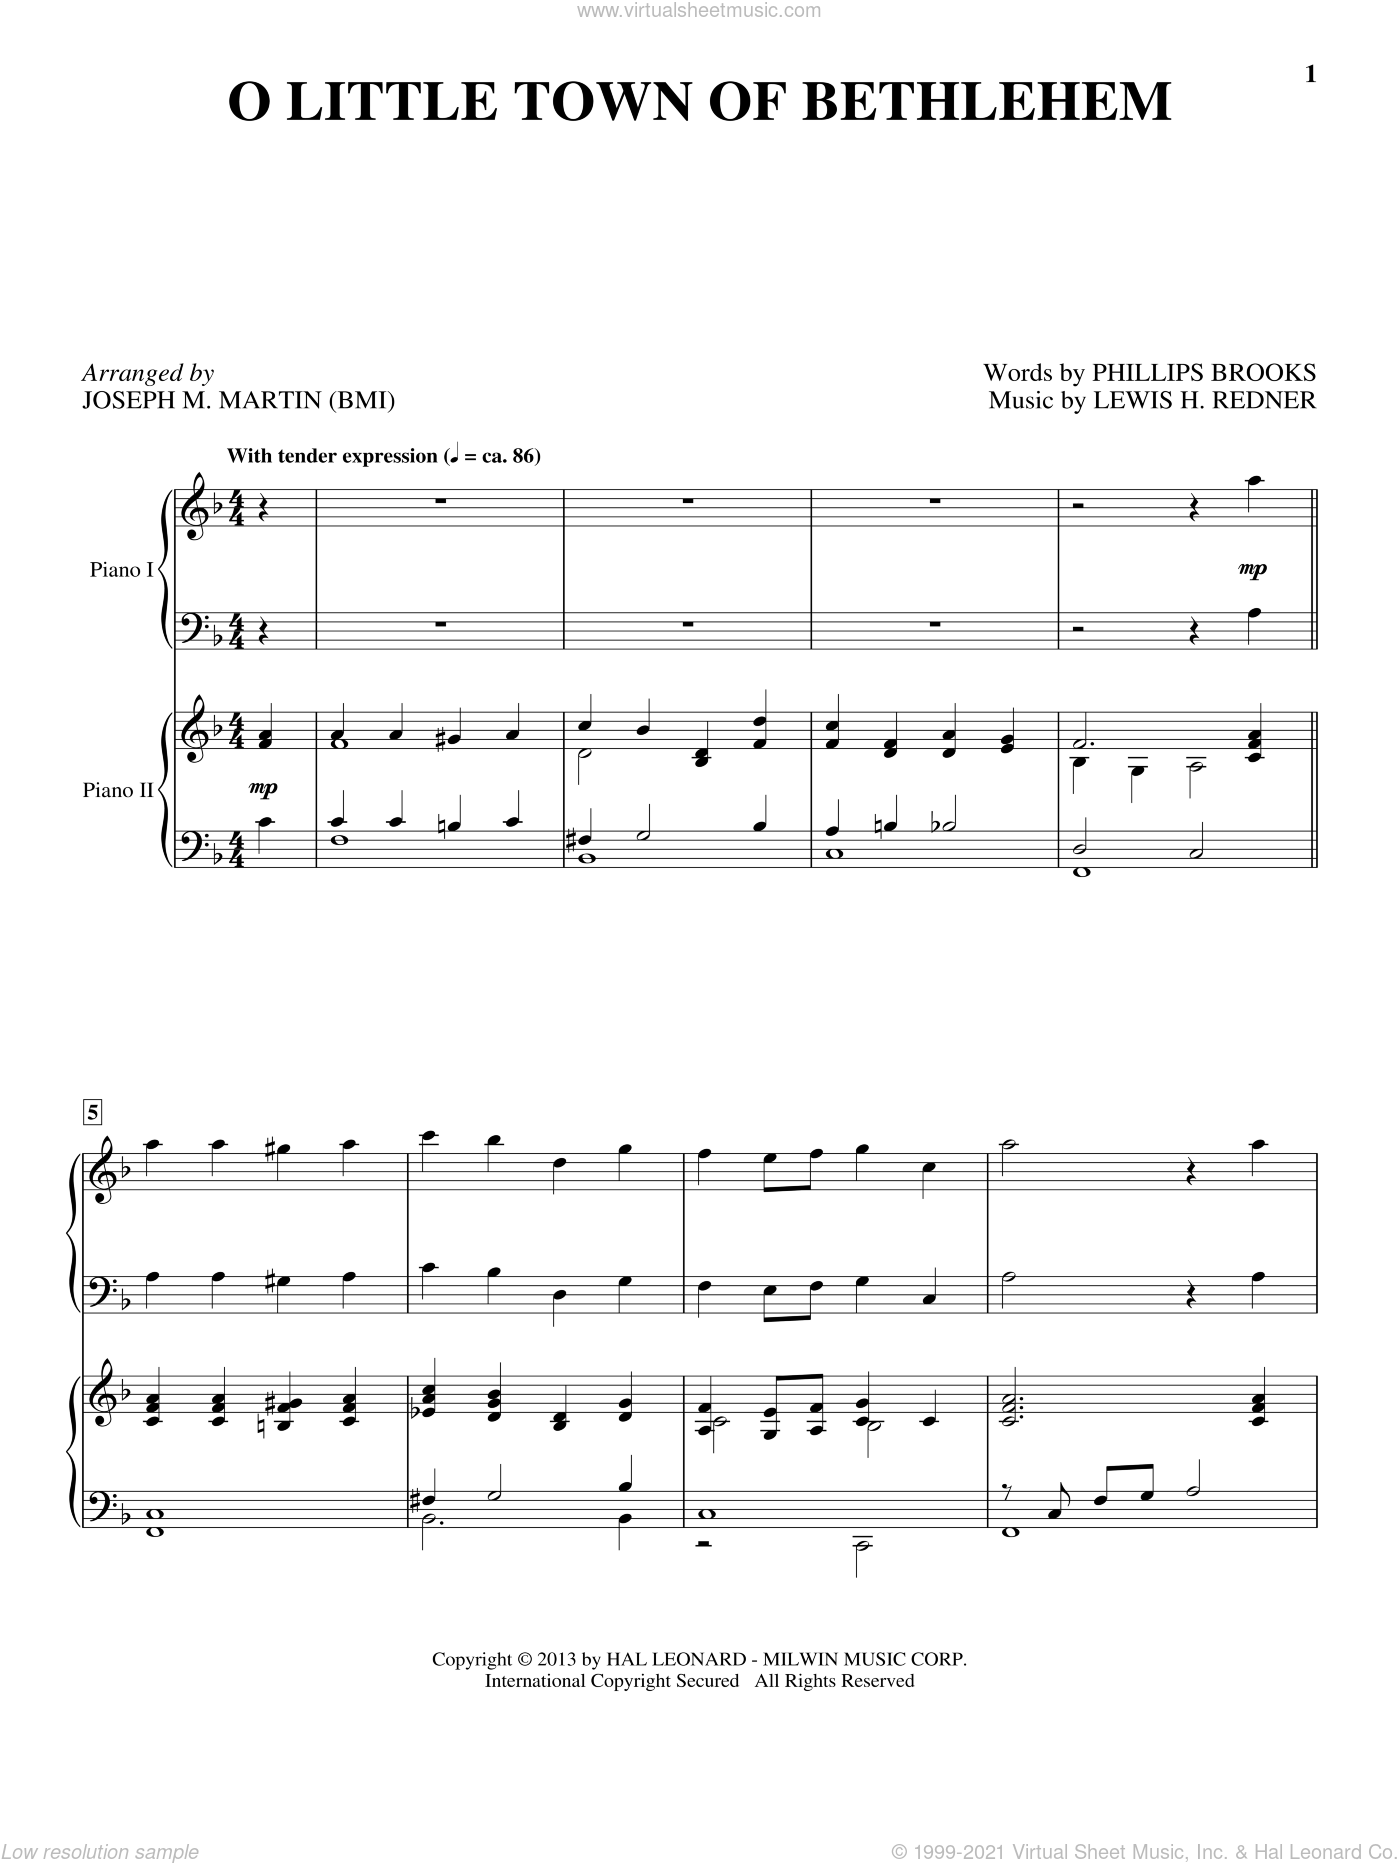 O Little Town Of Bethlehem sheet music for piano four hands (duets) by Joseph M. Martin